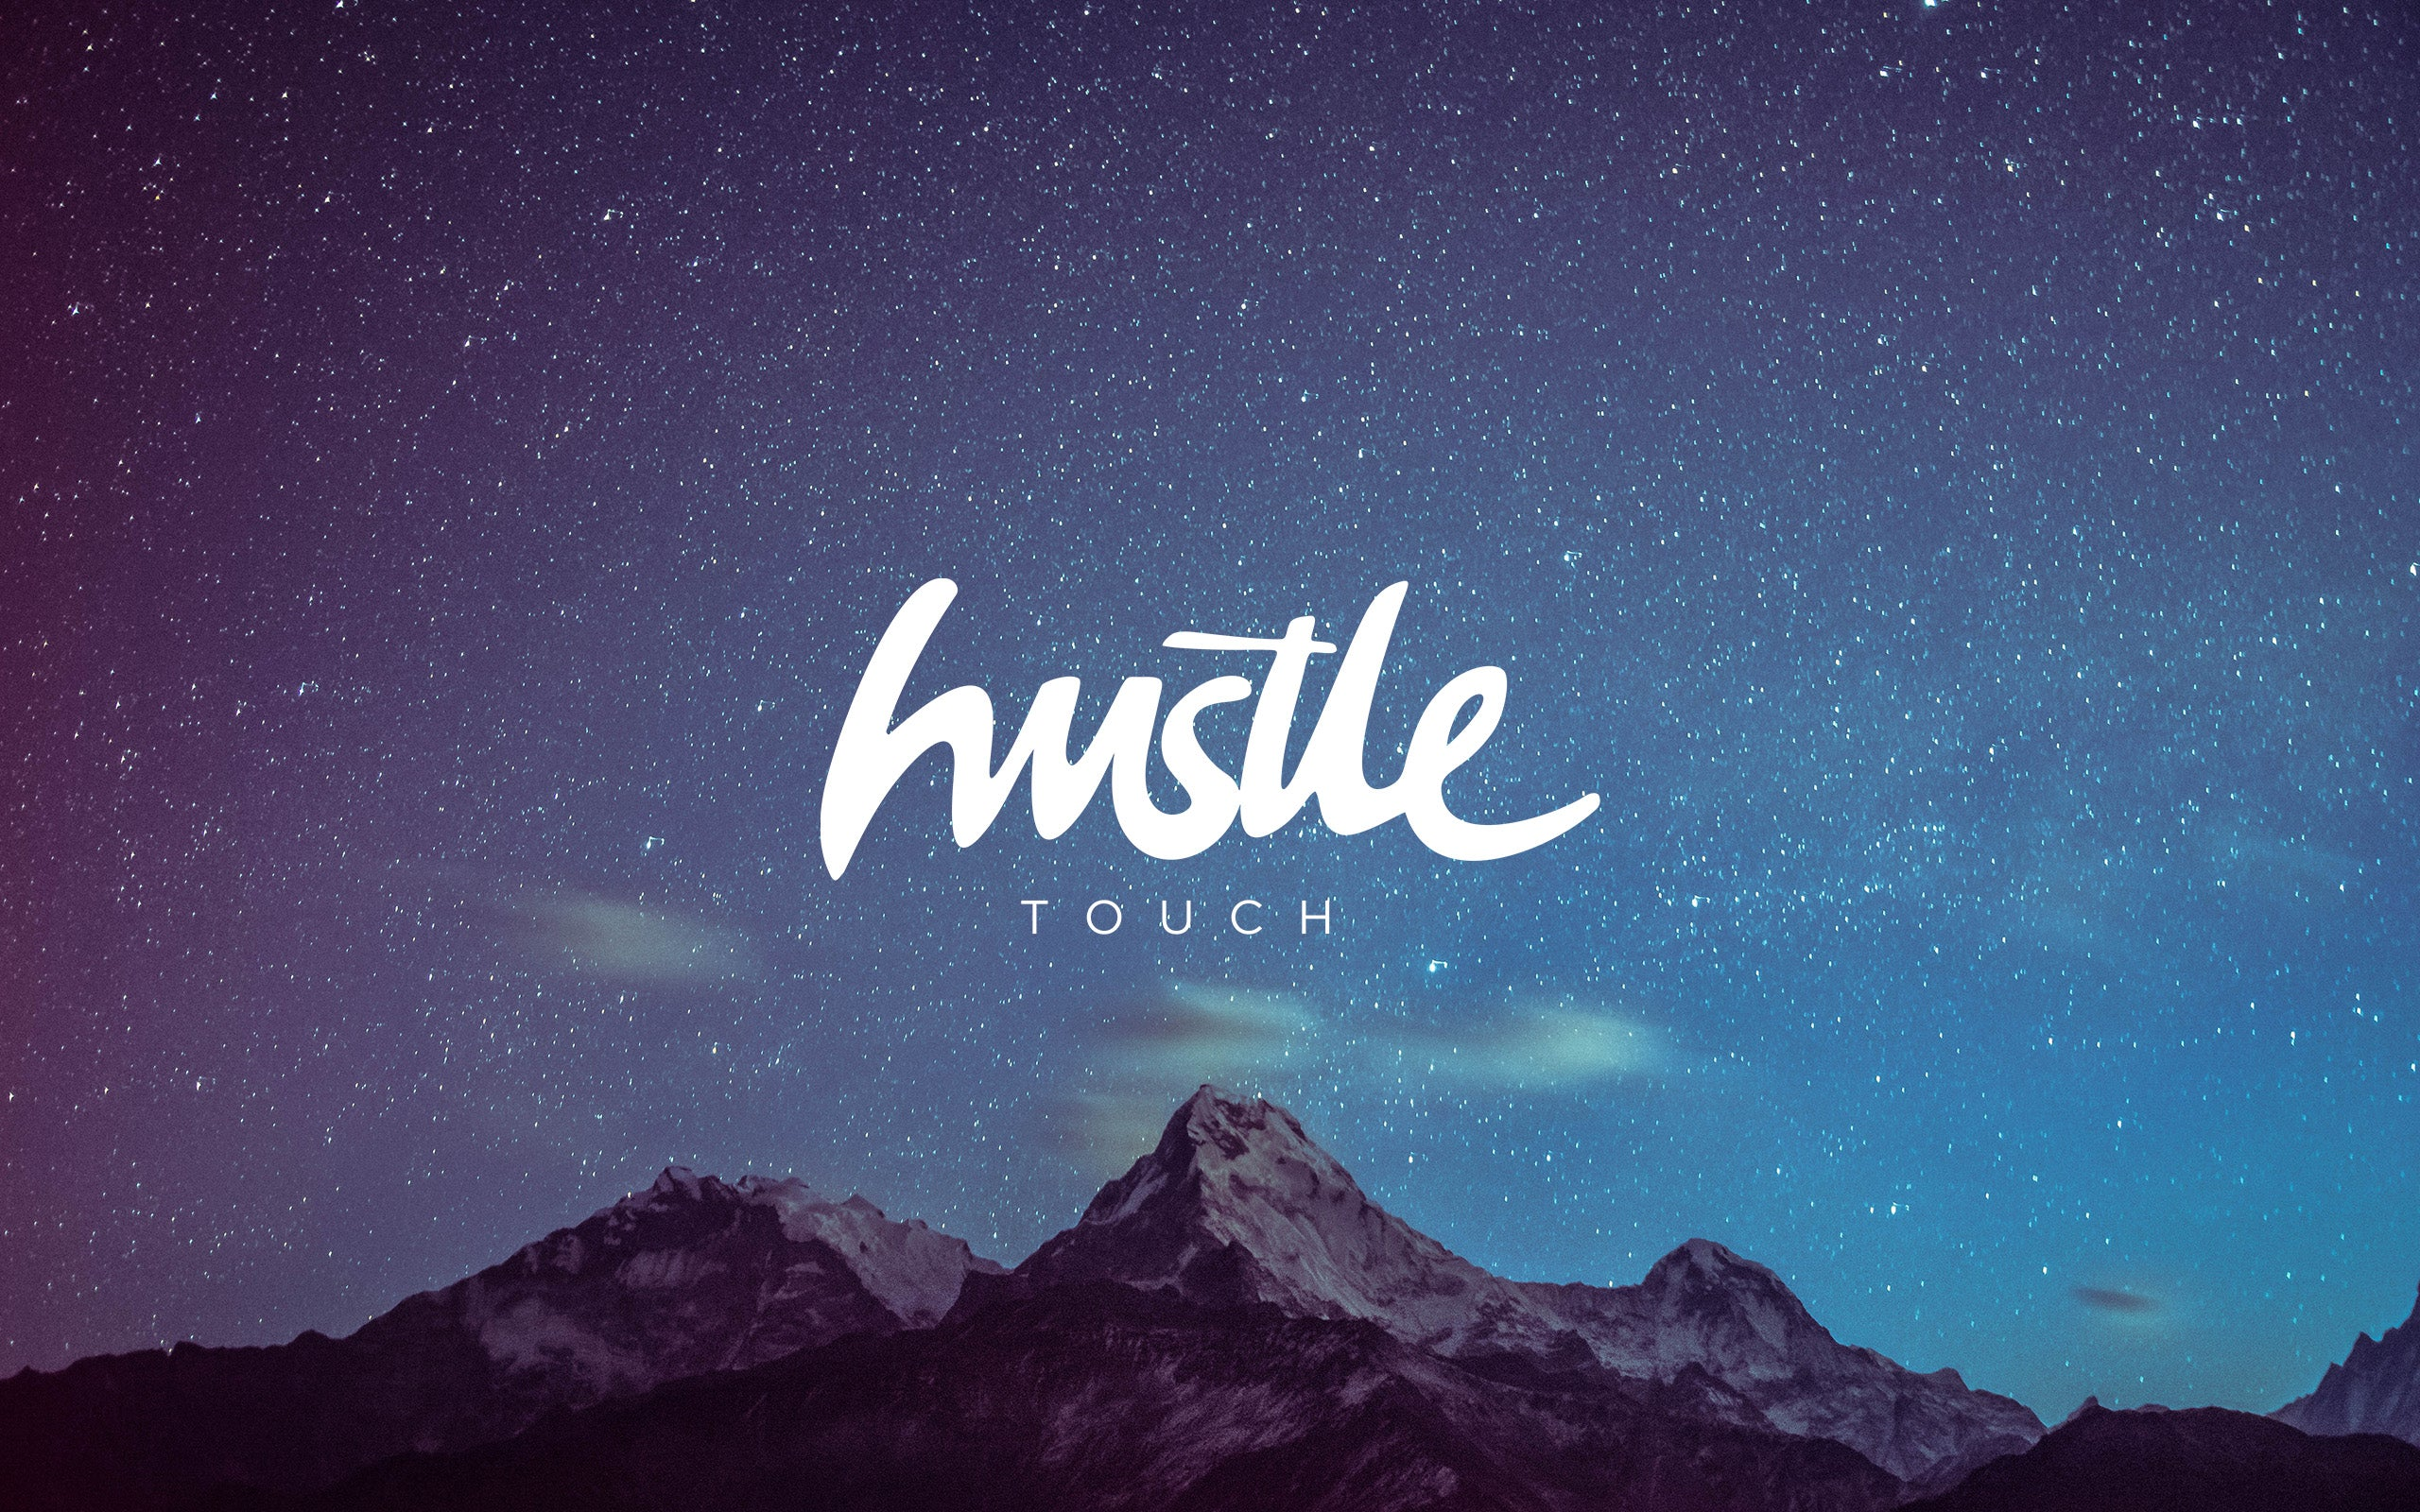 Get our Hustle Touch Wallpaper 046 for free. Give your setup a special hustle vibe with our wallpaper.